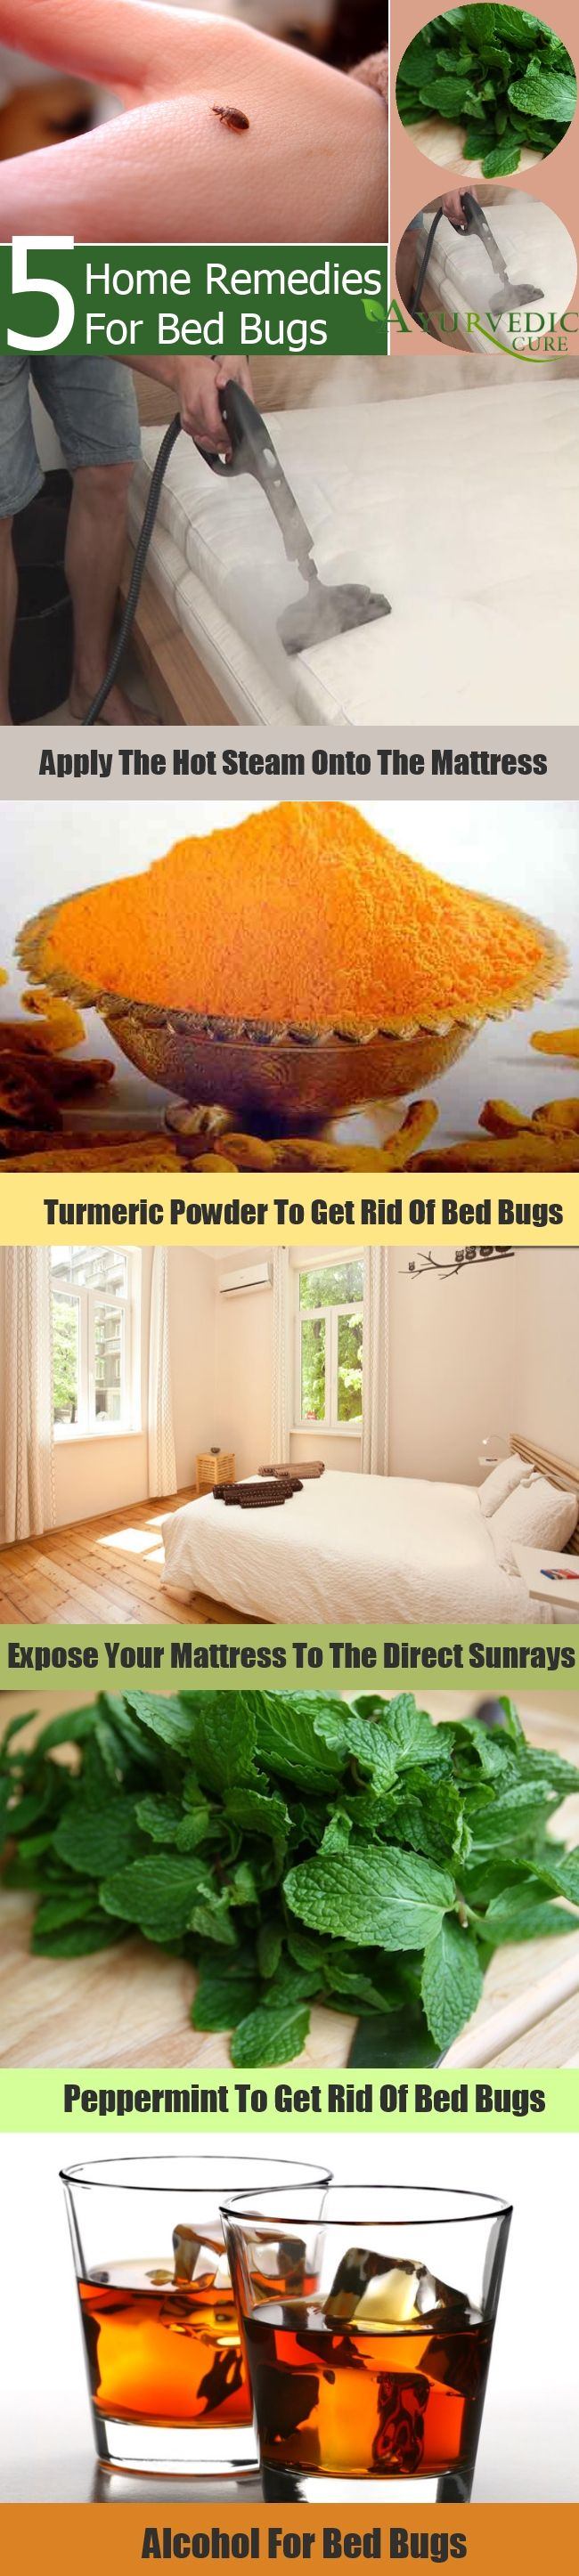 Bedroom Guardian Bed Bug Treatment